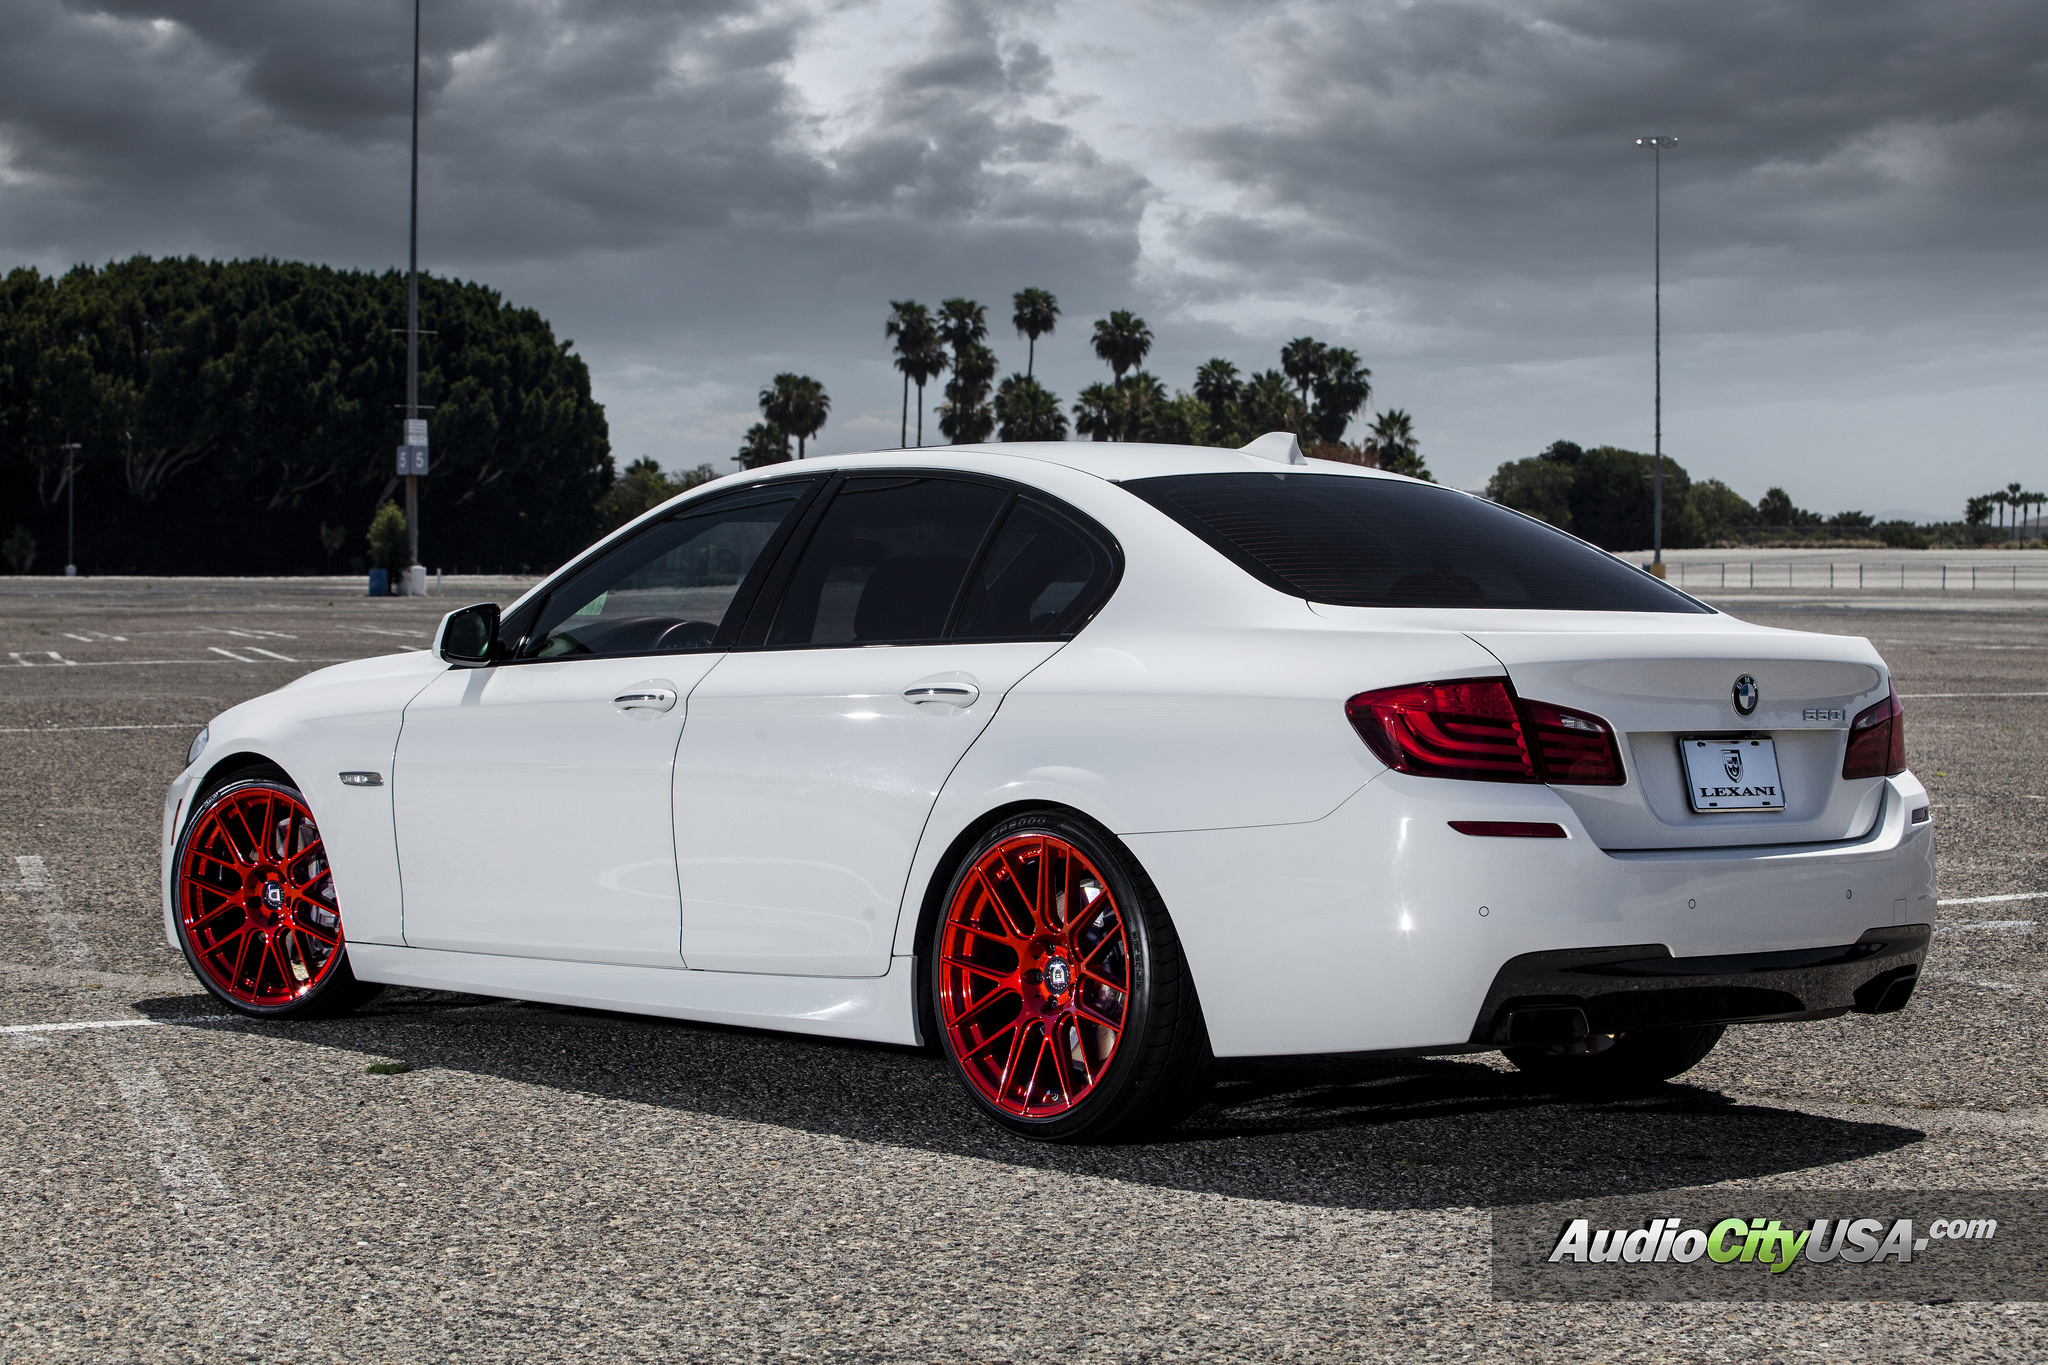 Bmw 550 Custom Wheels Lexani Css 8 20x Et Tire Size